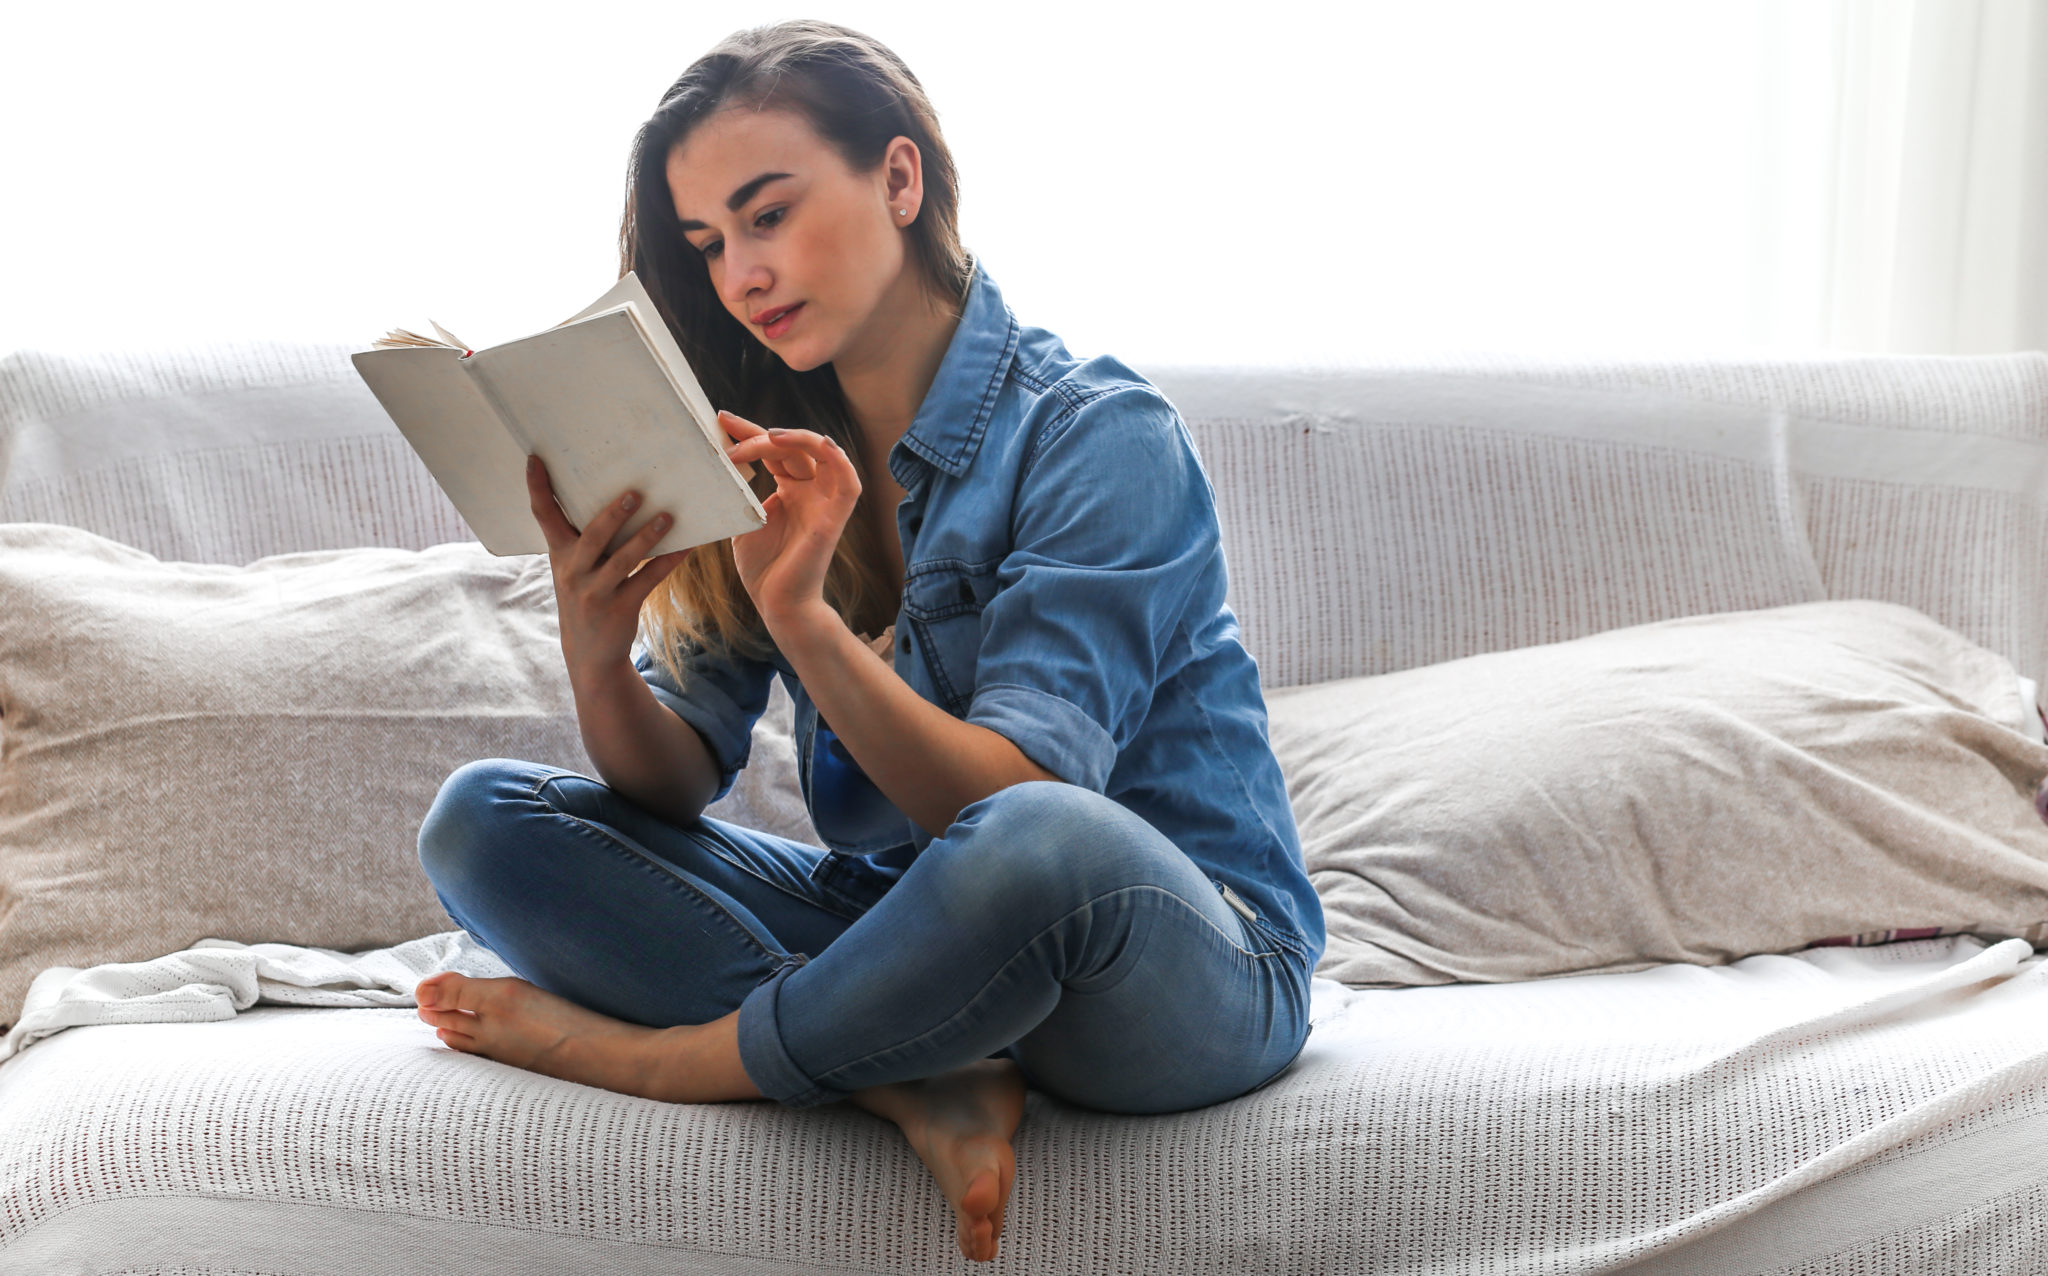 5-books-to-help-you-build-confidence-and-belief-in-yourself